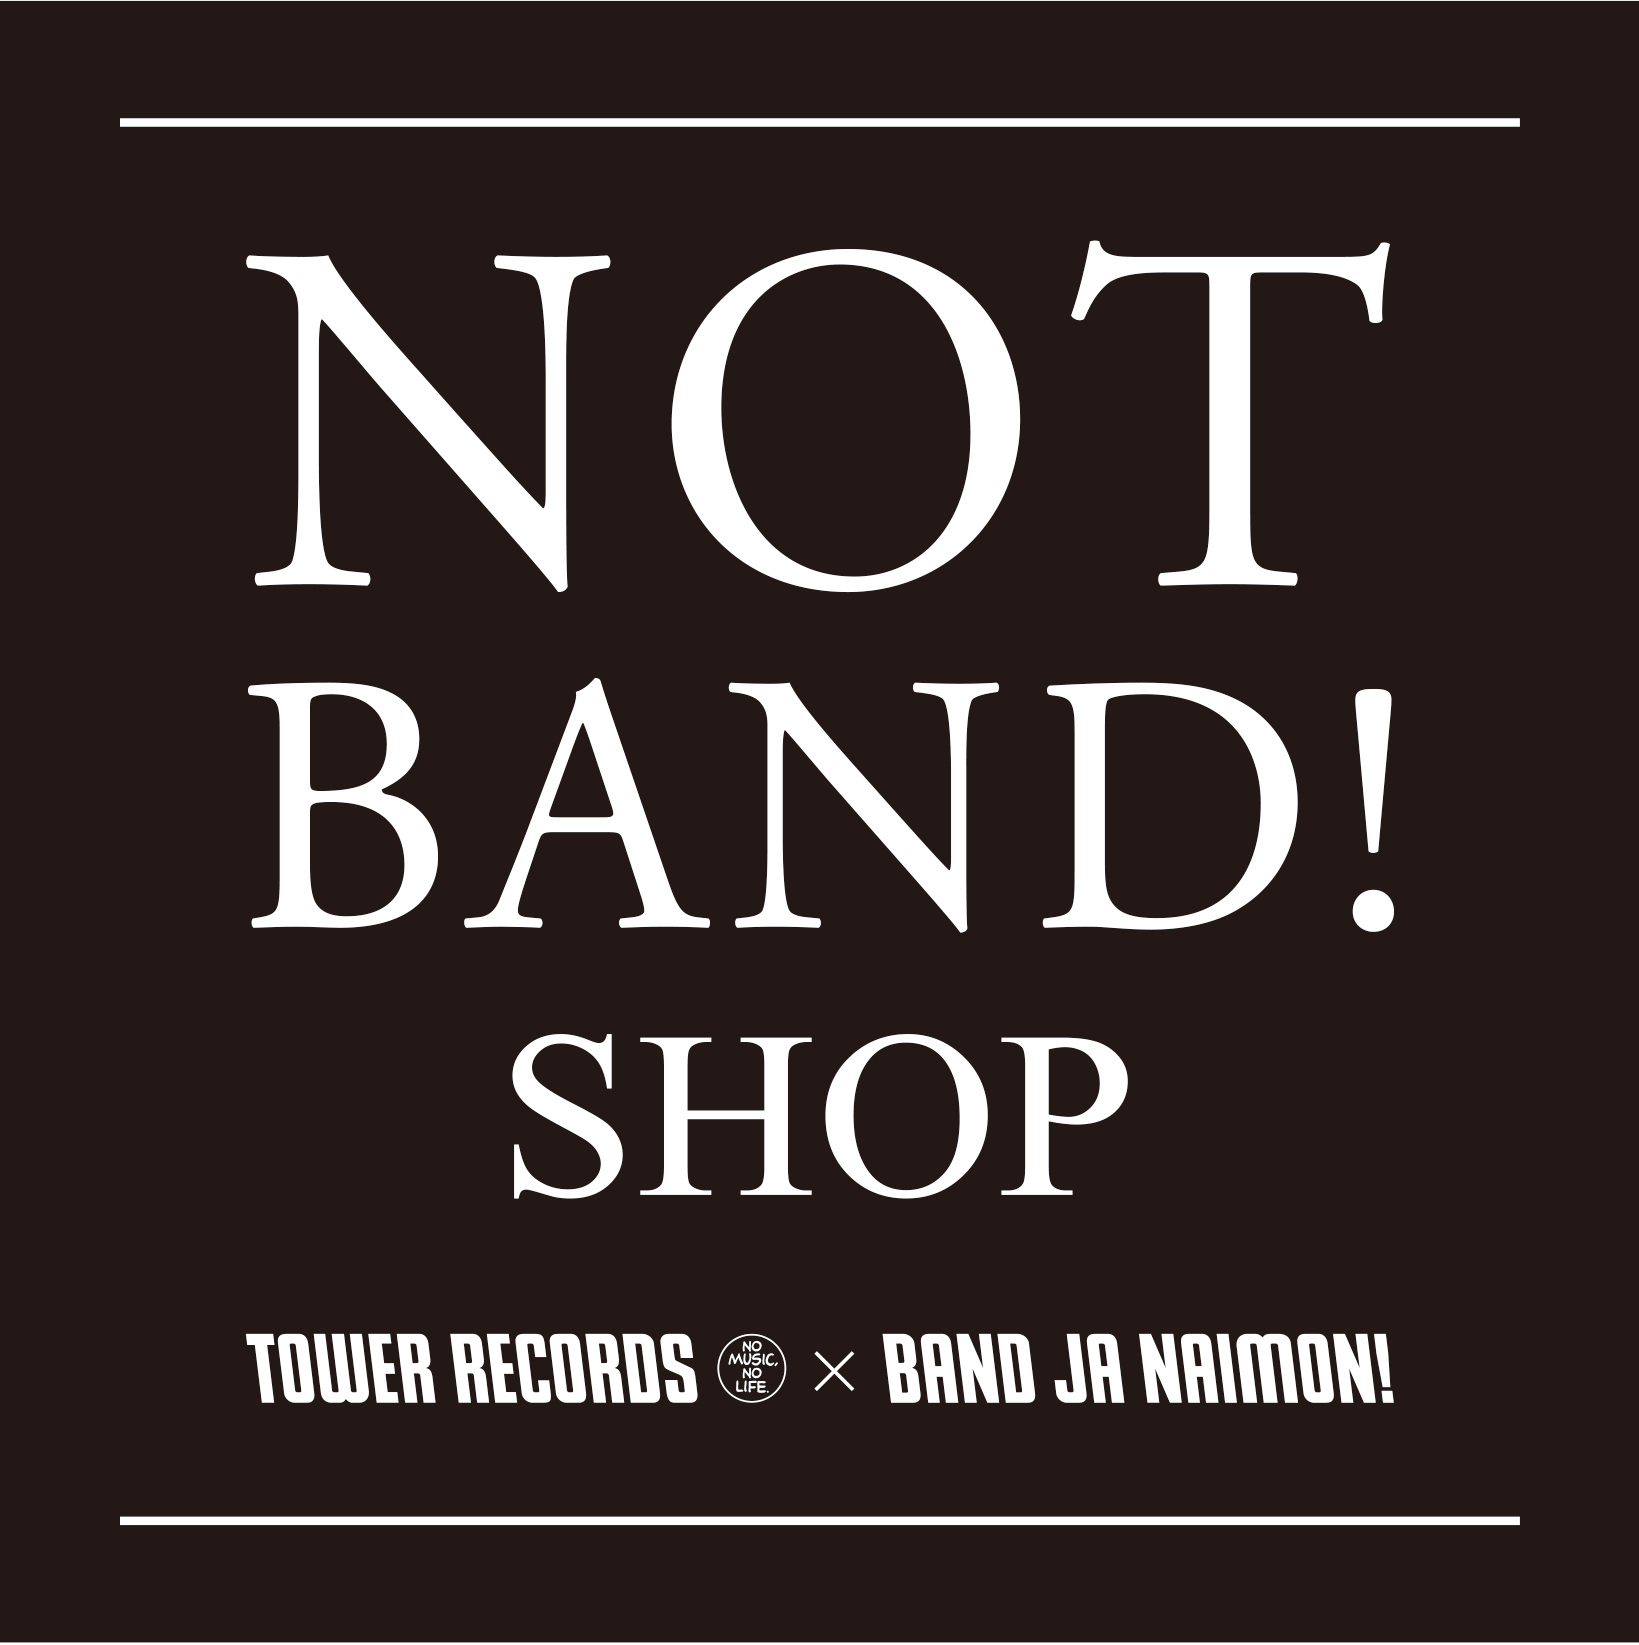 TOWER RECORDS×BAND JA NAIMON!コラボショップ「NOT BAND! SHOP」